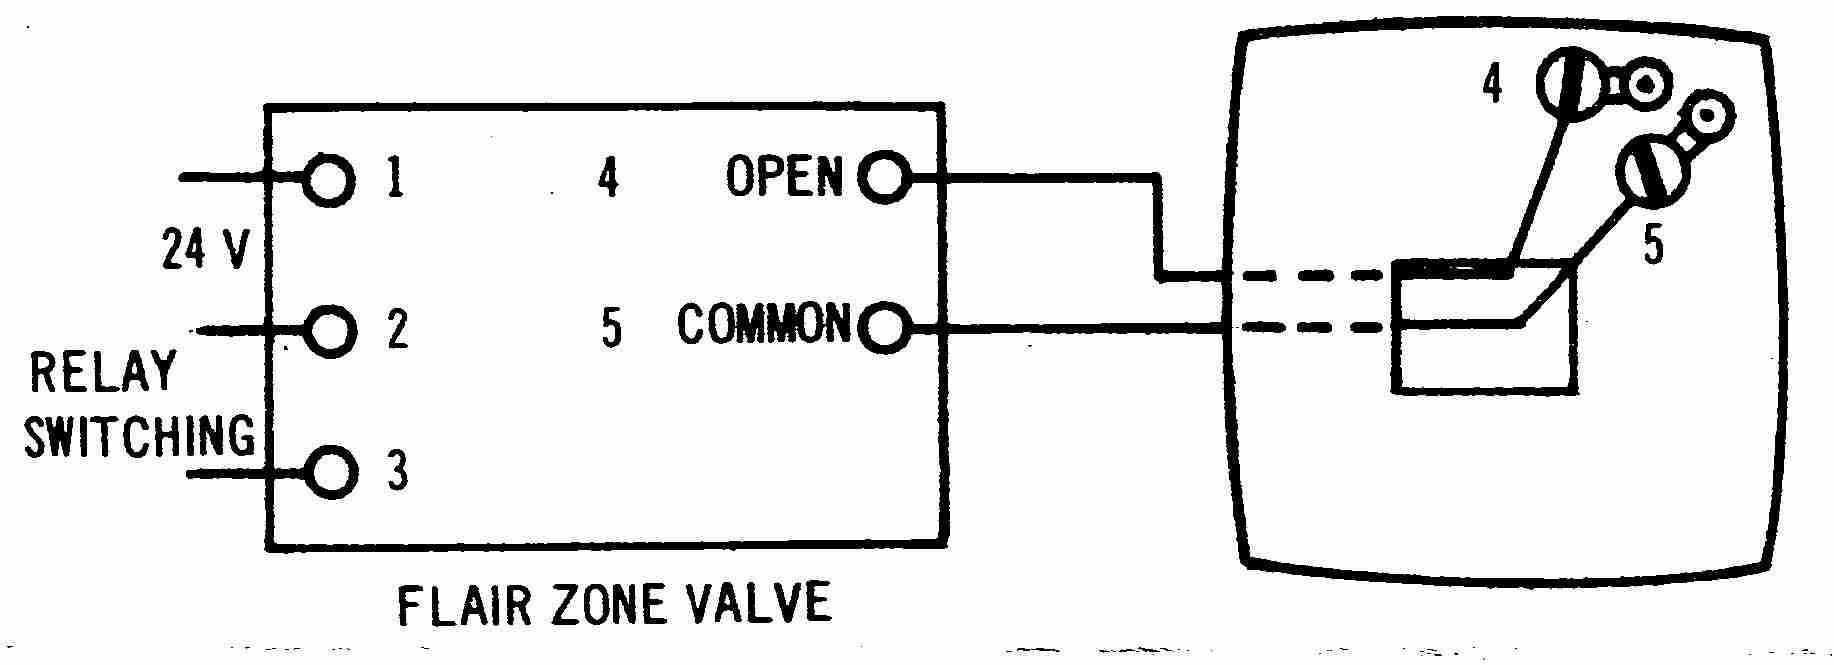 Room Thermostat Wiring Diagrams For Hvac Systems Honeywell Rth221b Diagram 2wire Flair 2 Wire Thermosat